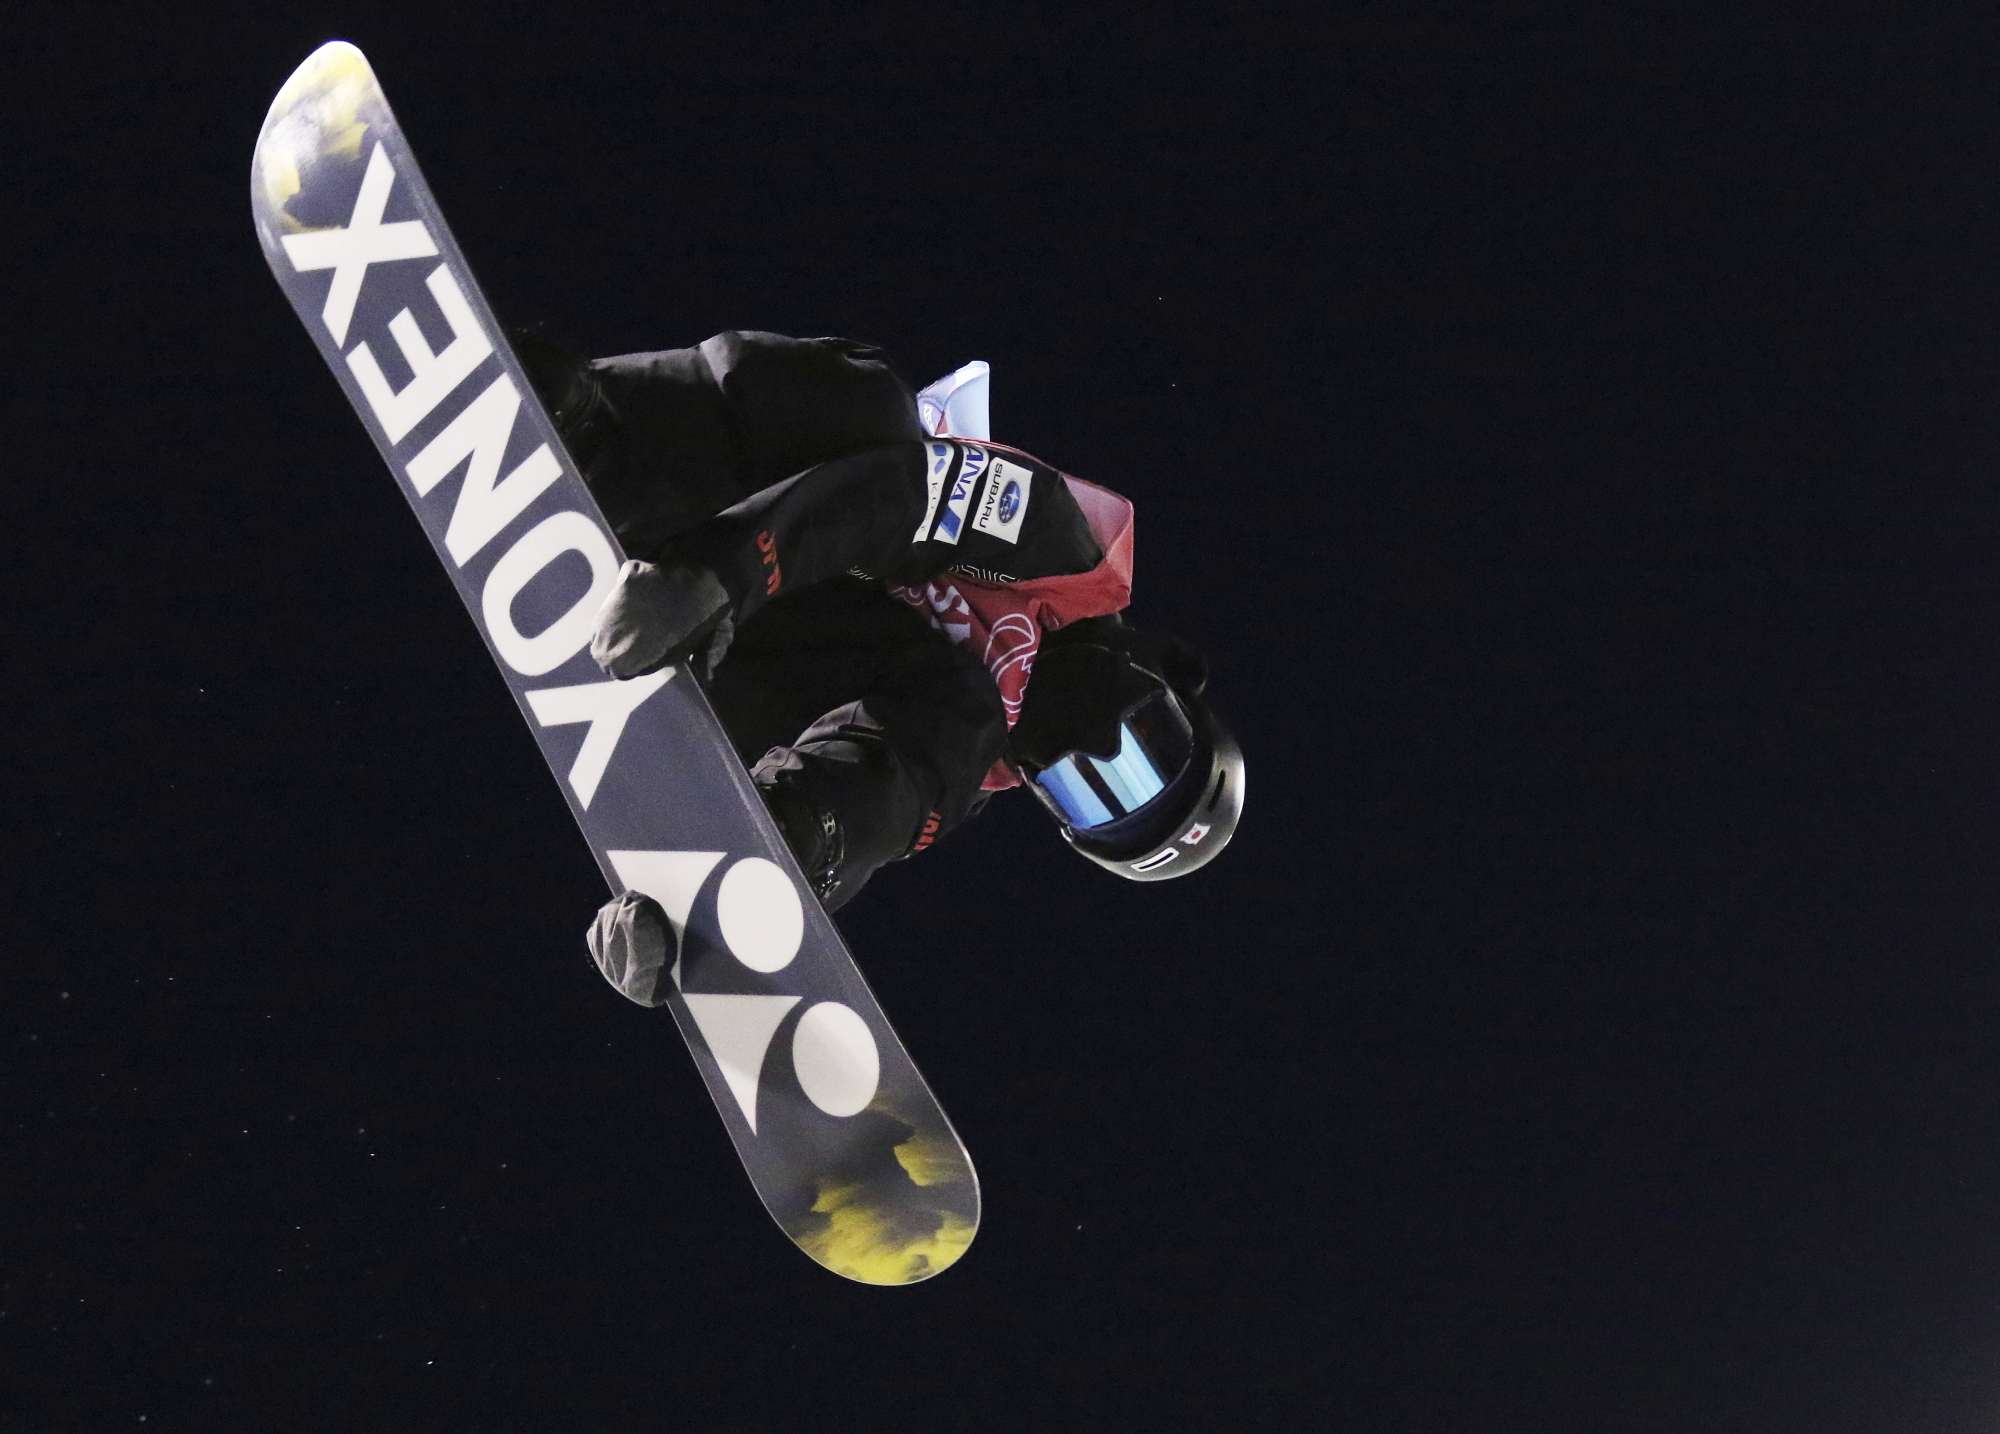 Ruka Hirano competes in the finals of the World Cup snowboard halfpipe in Calgary, Alberta, on Saturday. | AP